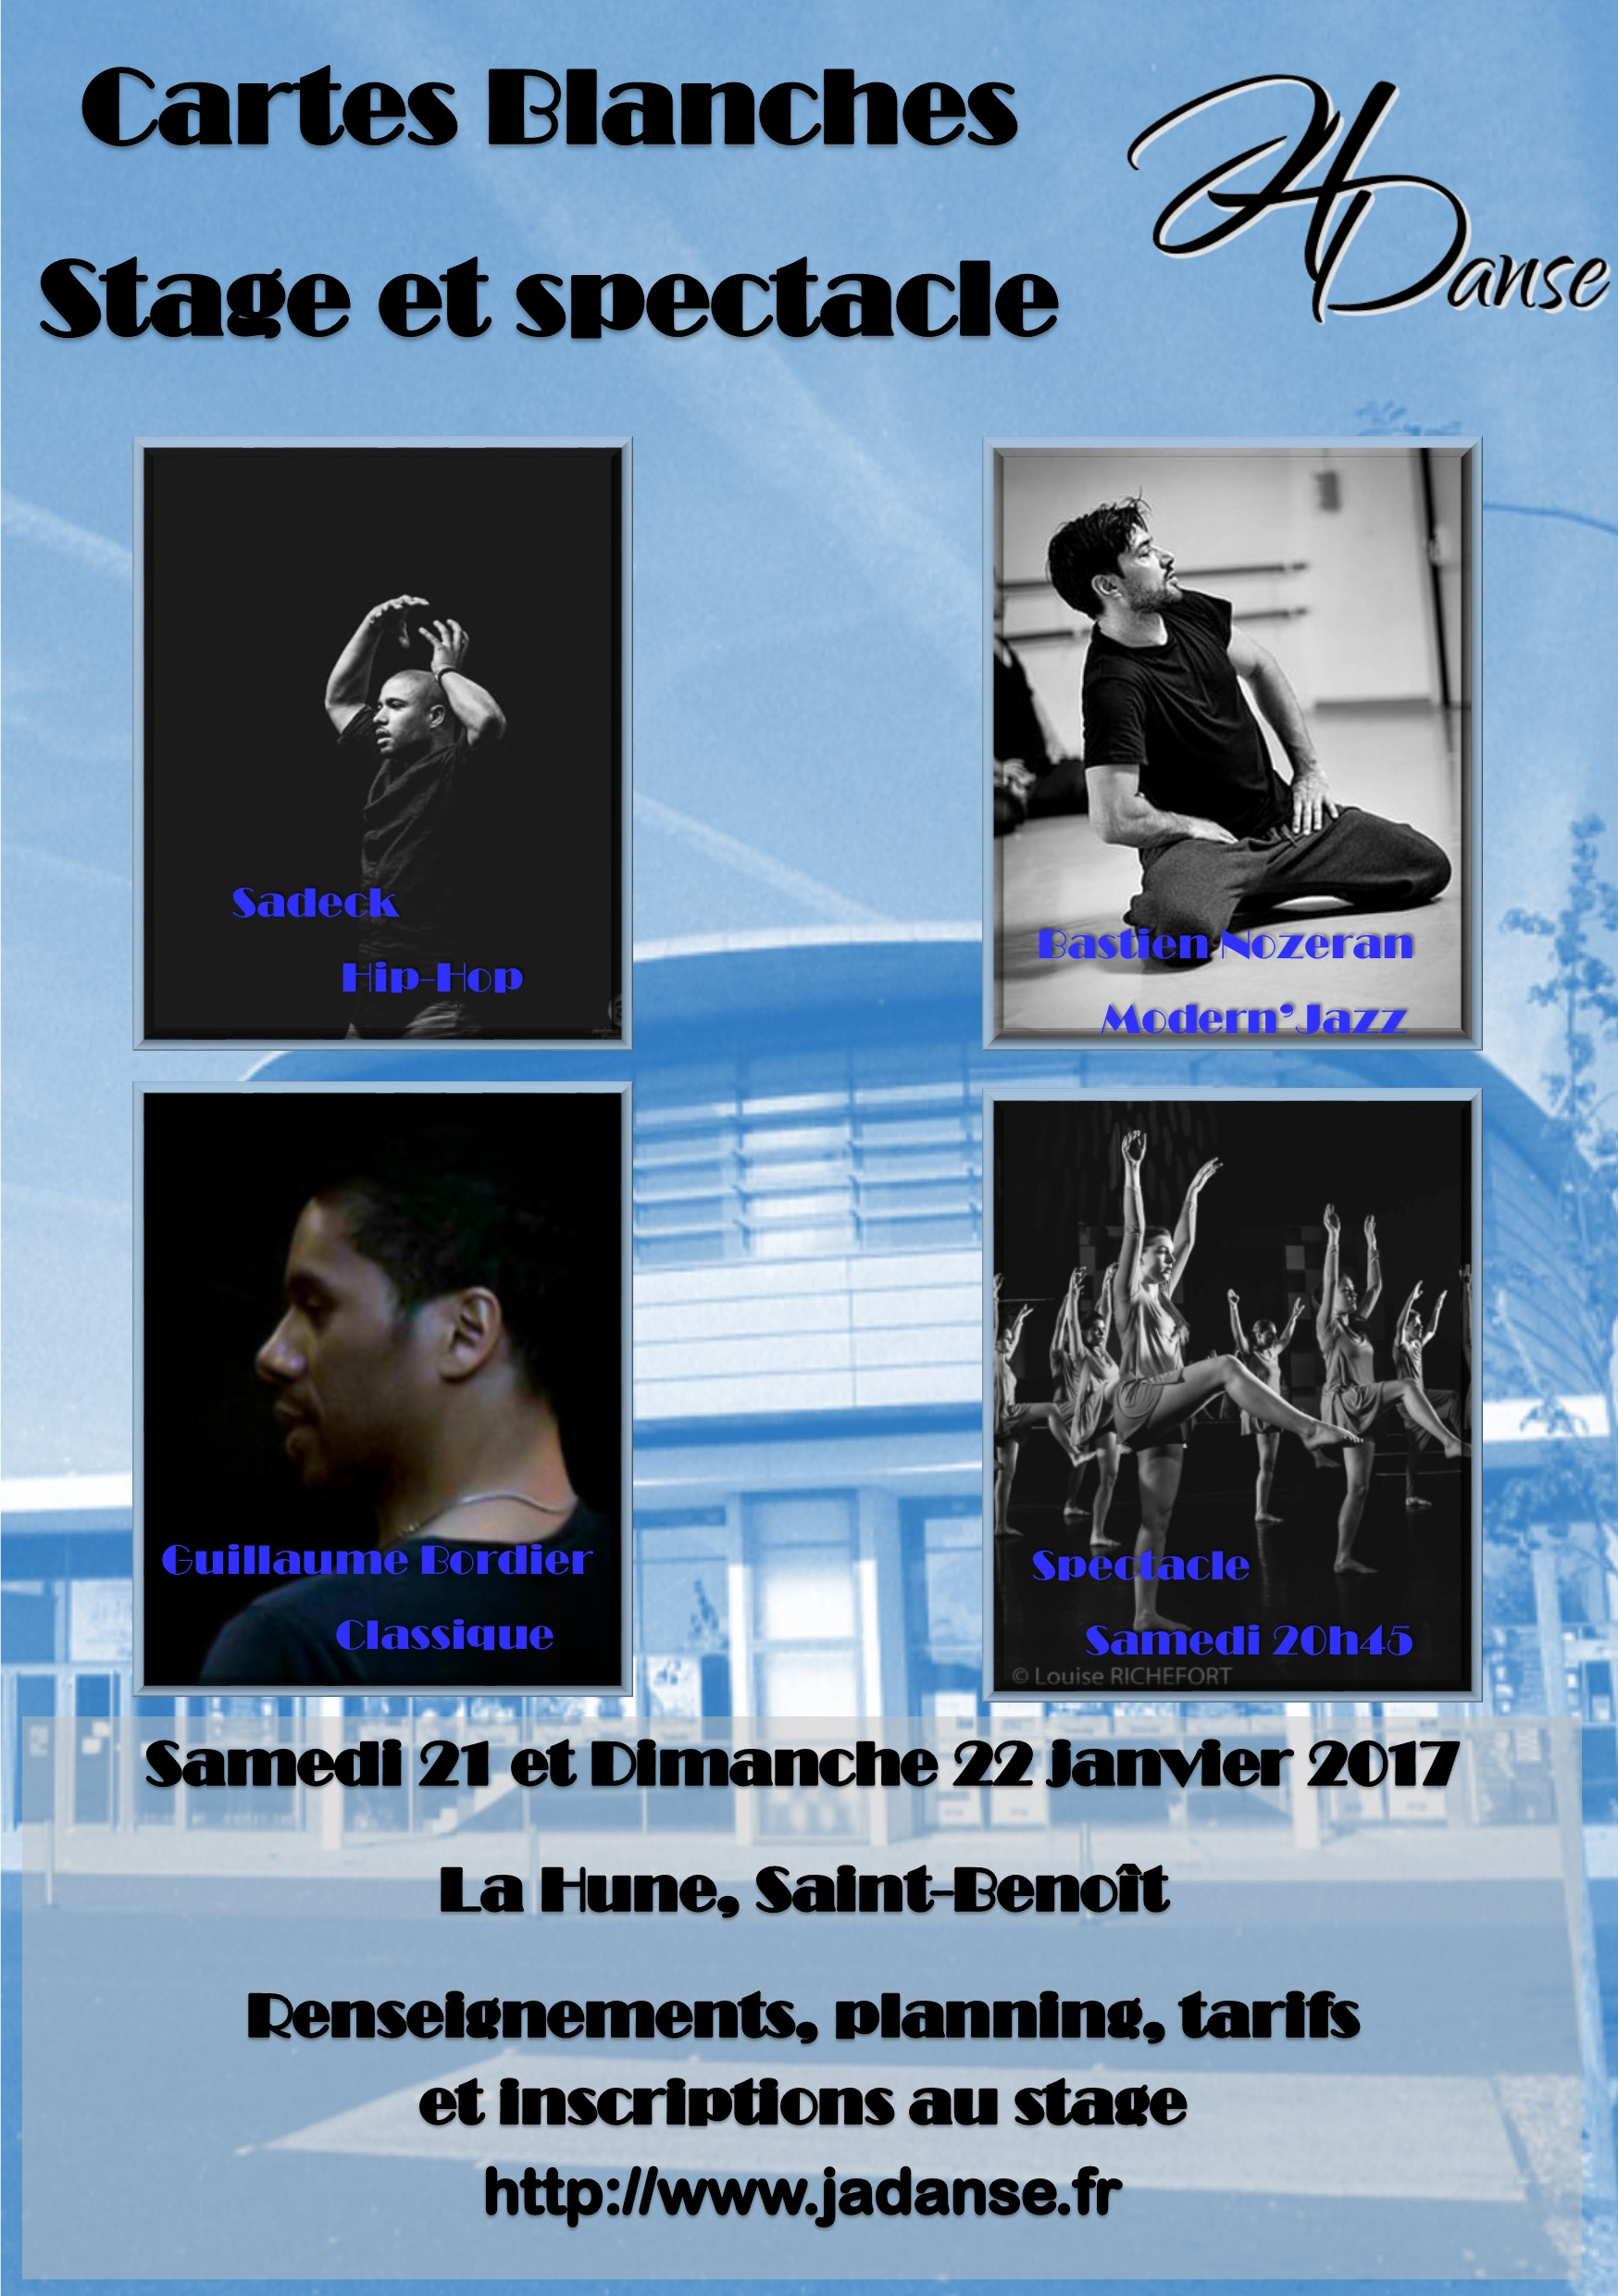 Cartes blanches 2017, stage et spectacle